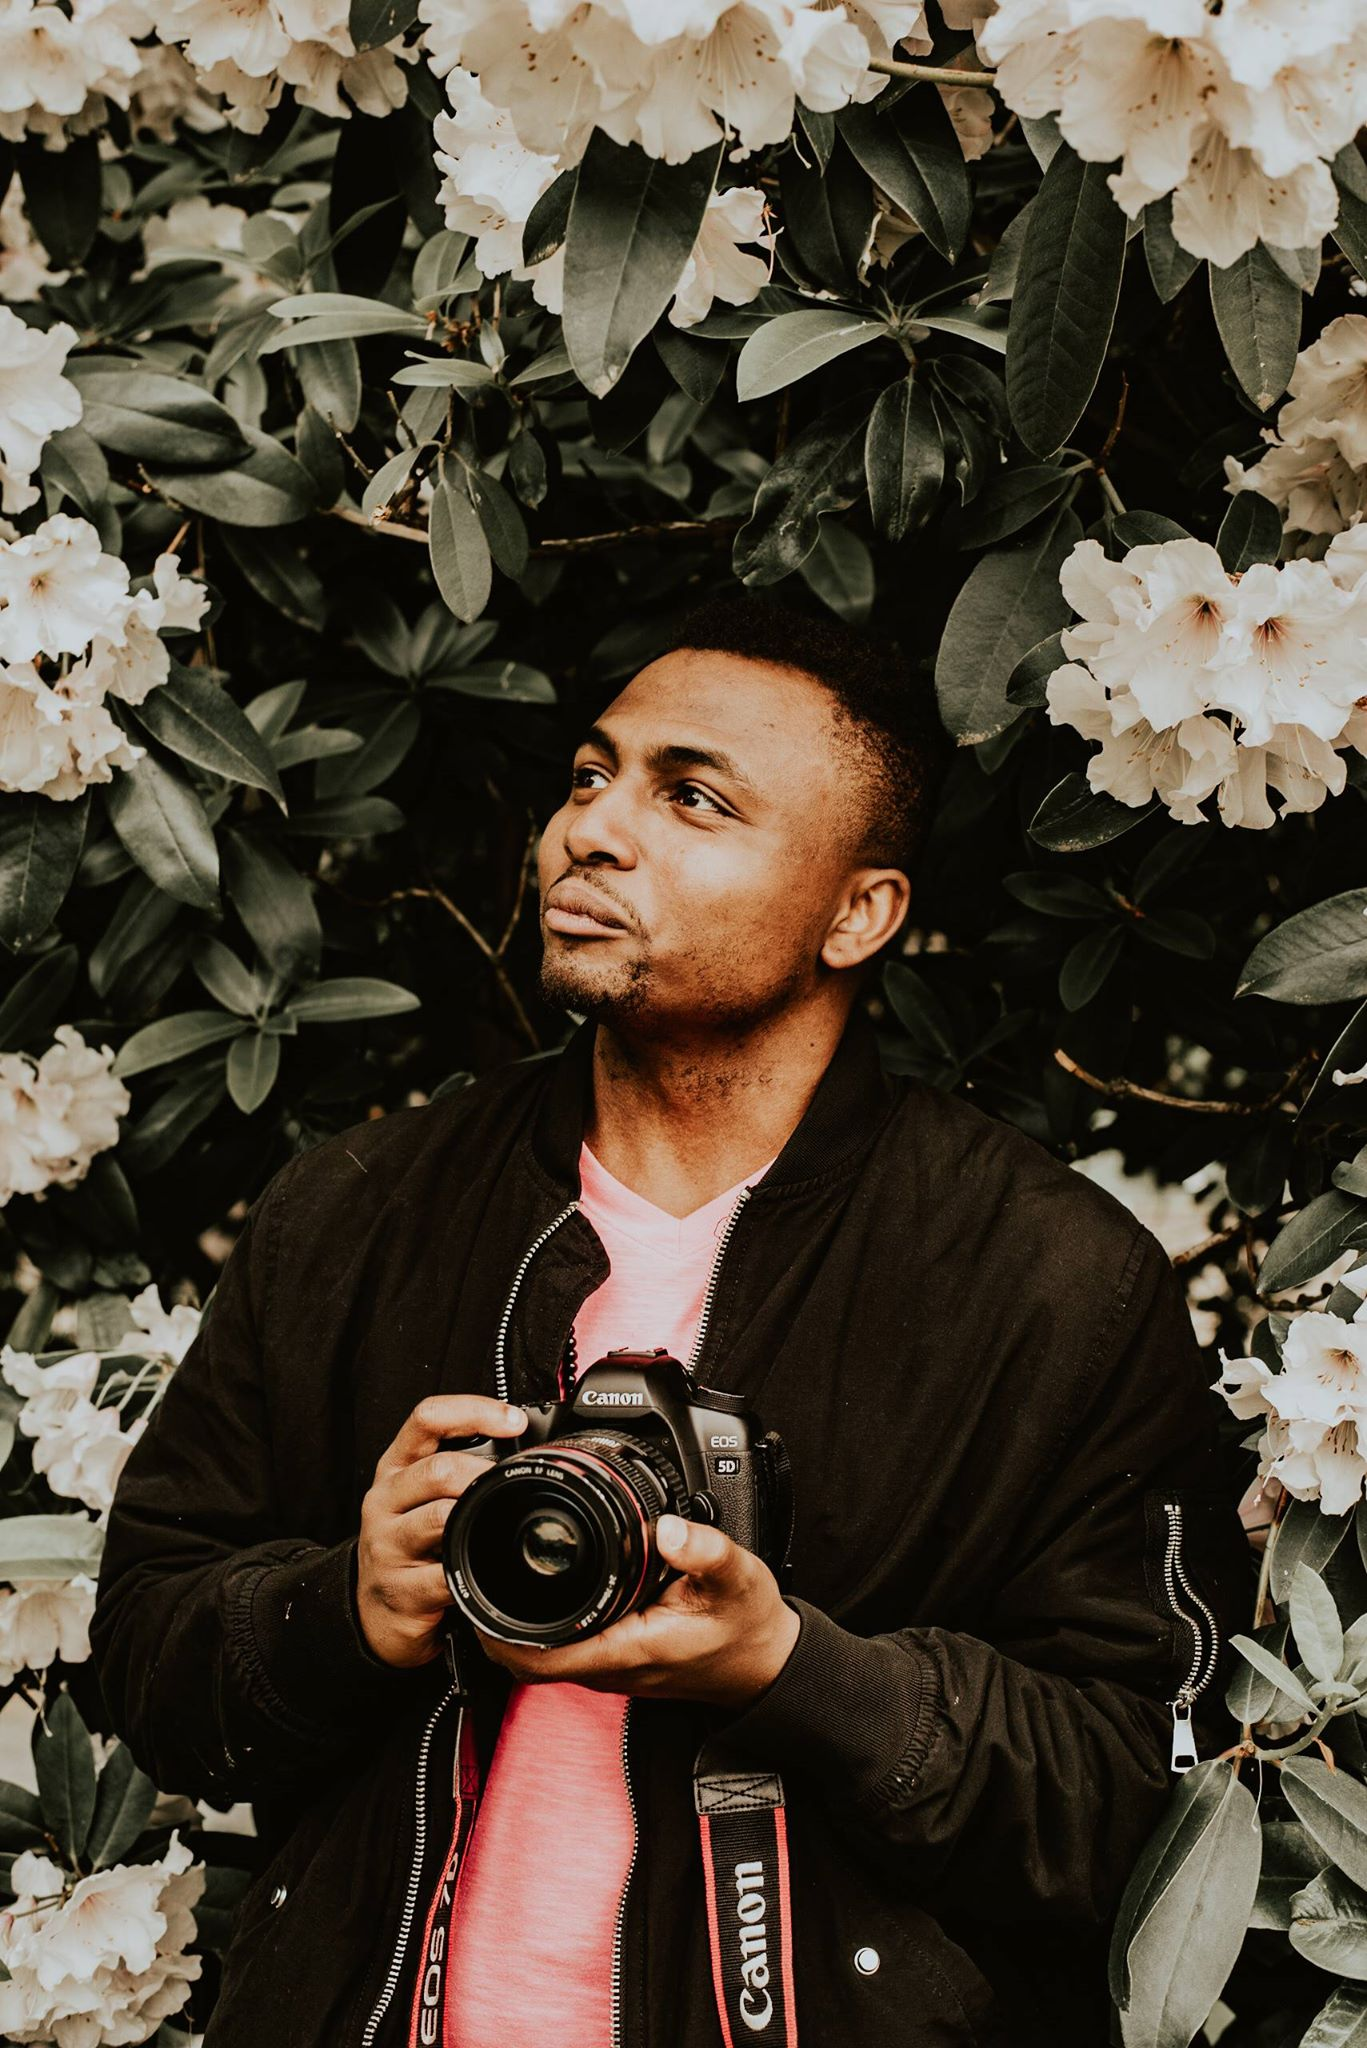 DeShaun Washington - My name is DeShaun Washington, of Boudoir by Dynasty. I'm a Seattle based boudoir photographer.I graduated from the Art Institute of Seattle back in December 2017. While in school I learned how to craft my lighting and portrait abilities to be able to create both beautiful and sensual photos.Have a special someone you want photos done for? Just want to feel beautiful? No matter your reason, contact me to help you see the beauty that is you.